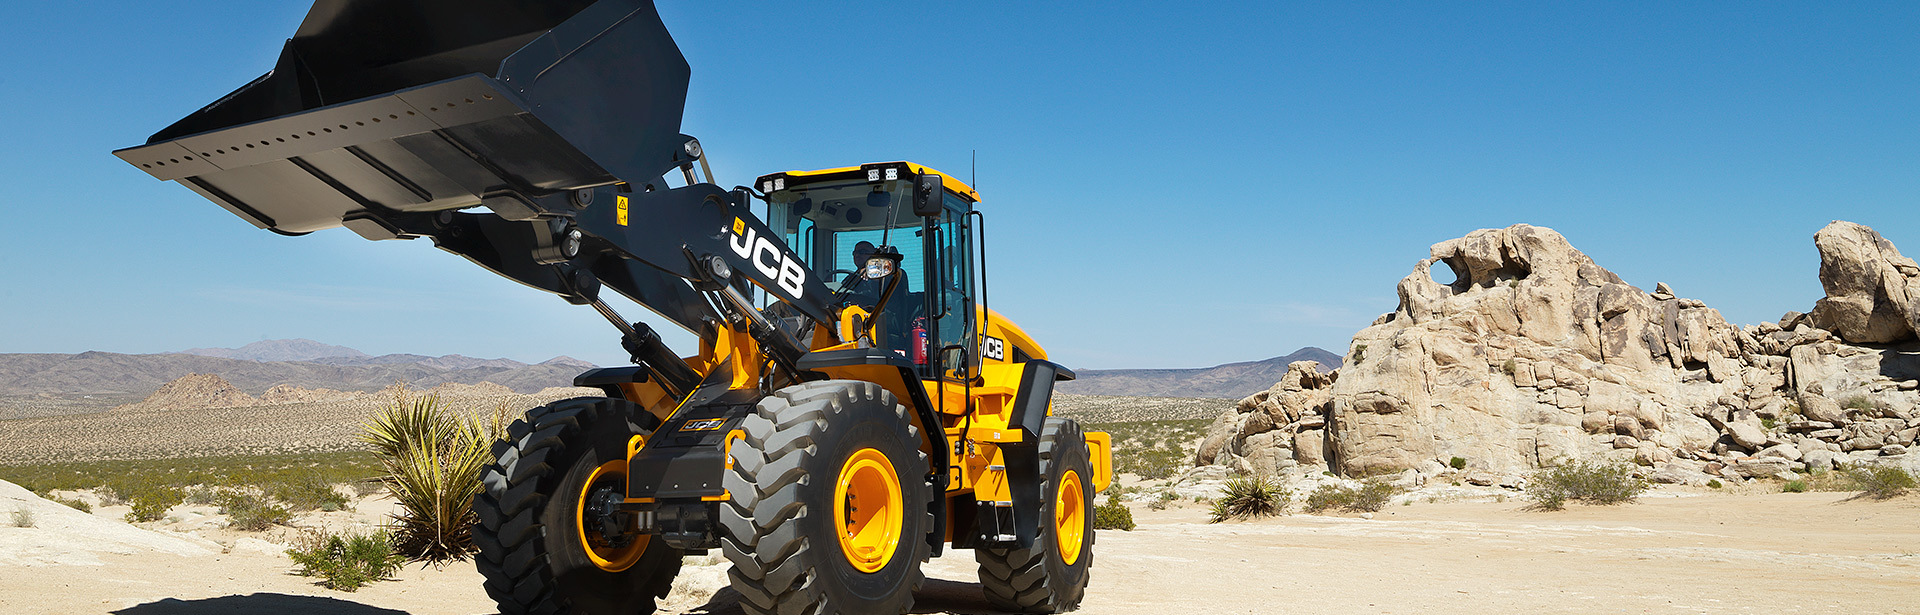 banner-jcb-wheel-loader4.jpg